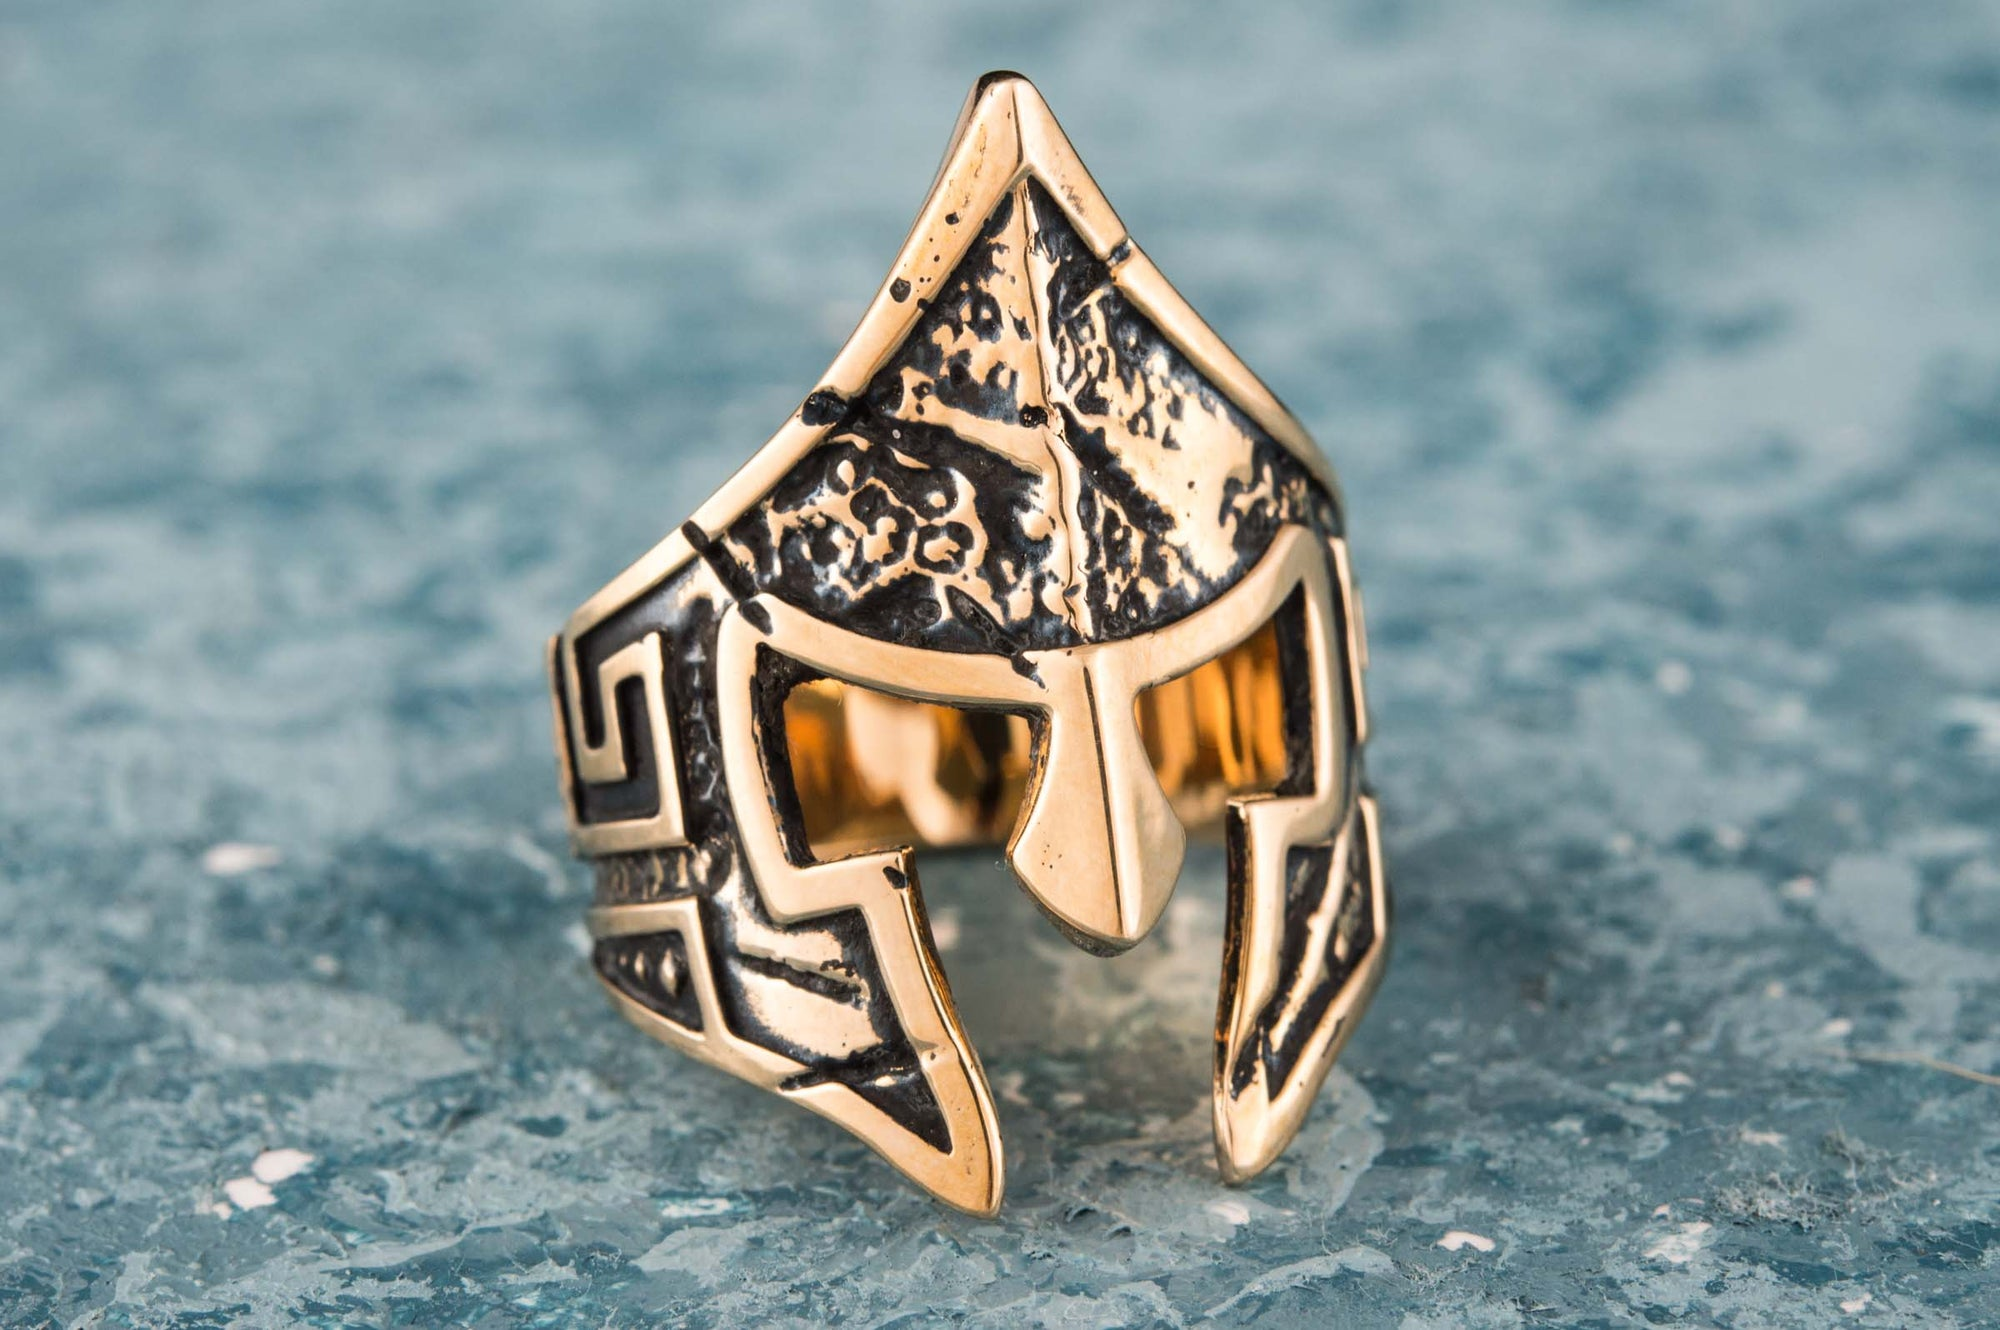 Rings Ancient Greece Unique Spartan Warrior Helmet Handmade Ring Ancient Treasures Ancientreasures Viking Odin Thor Mjolnir Celtic Ancient Egypt Norse Norse Mythology